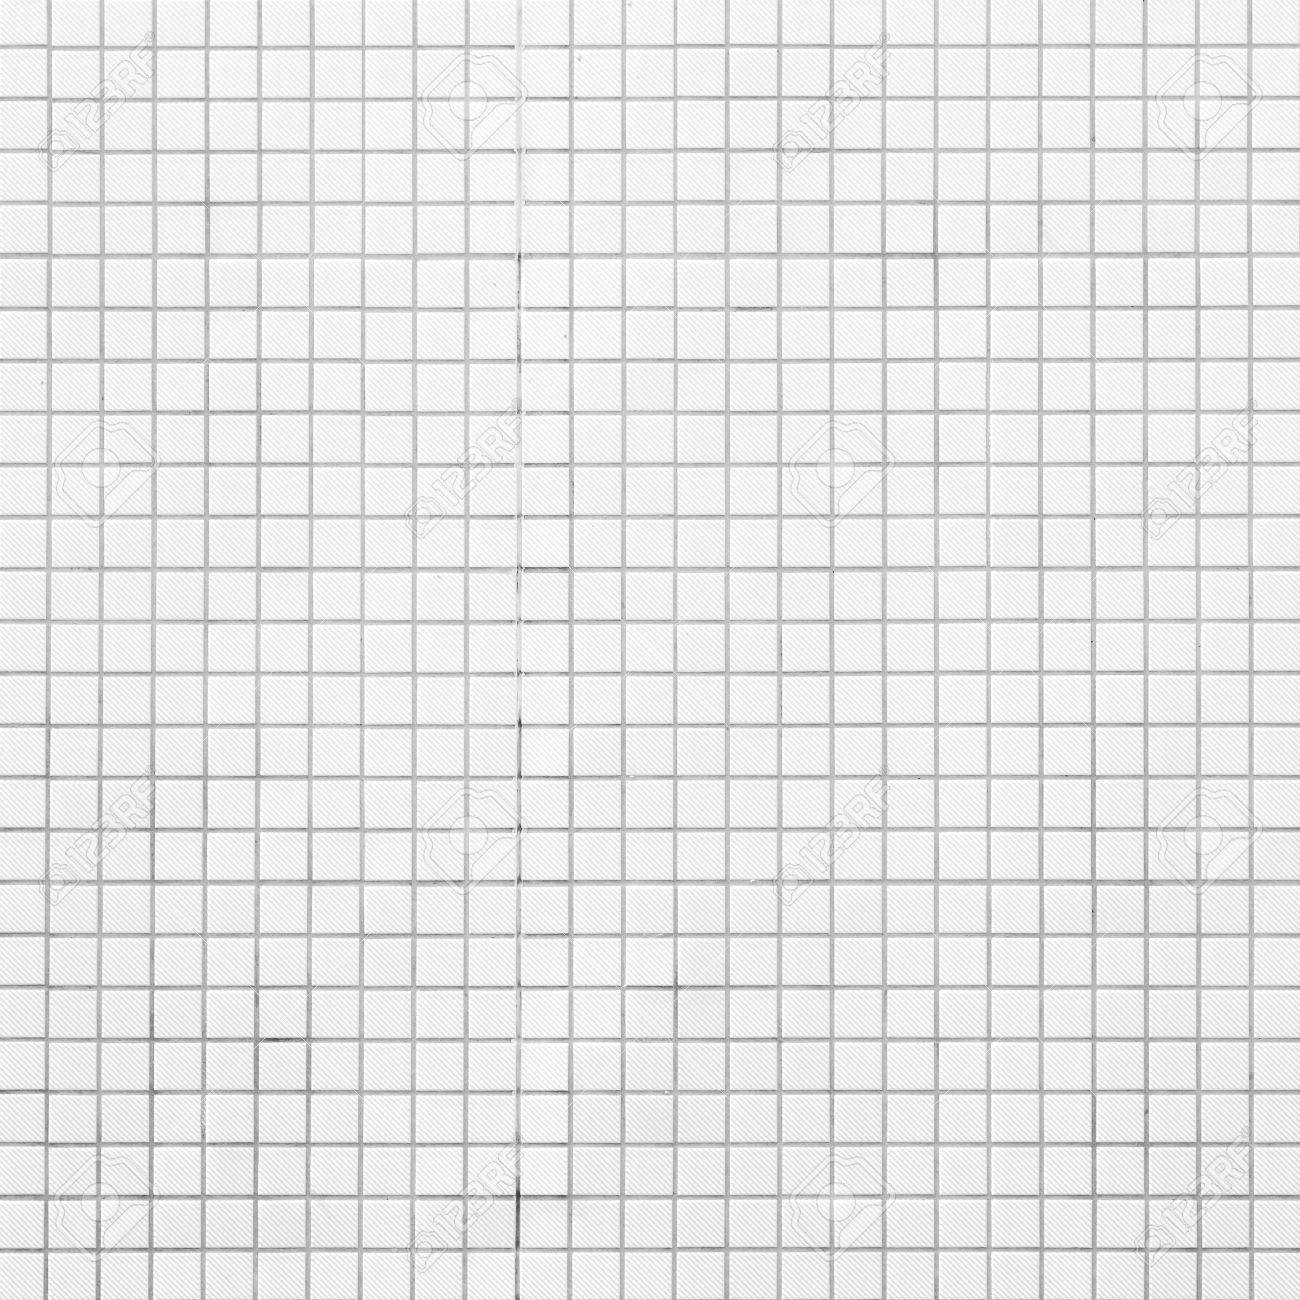 White Mosaic Tiles Abstract Background And Texture Stock Photo